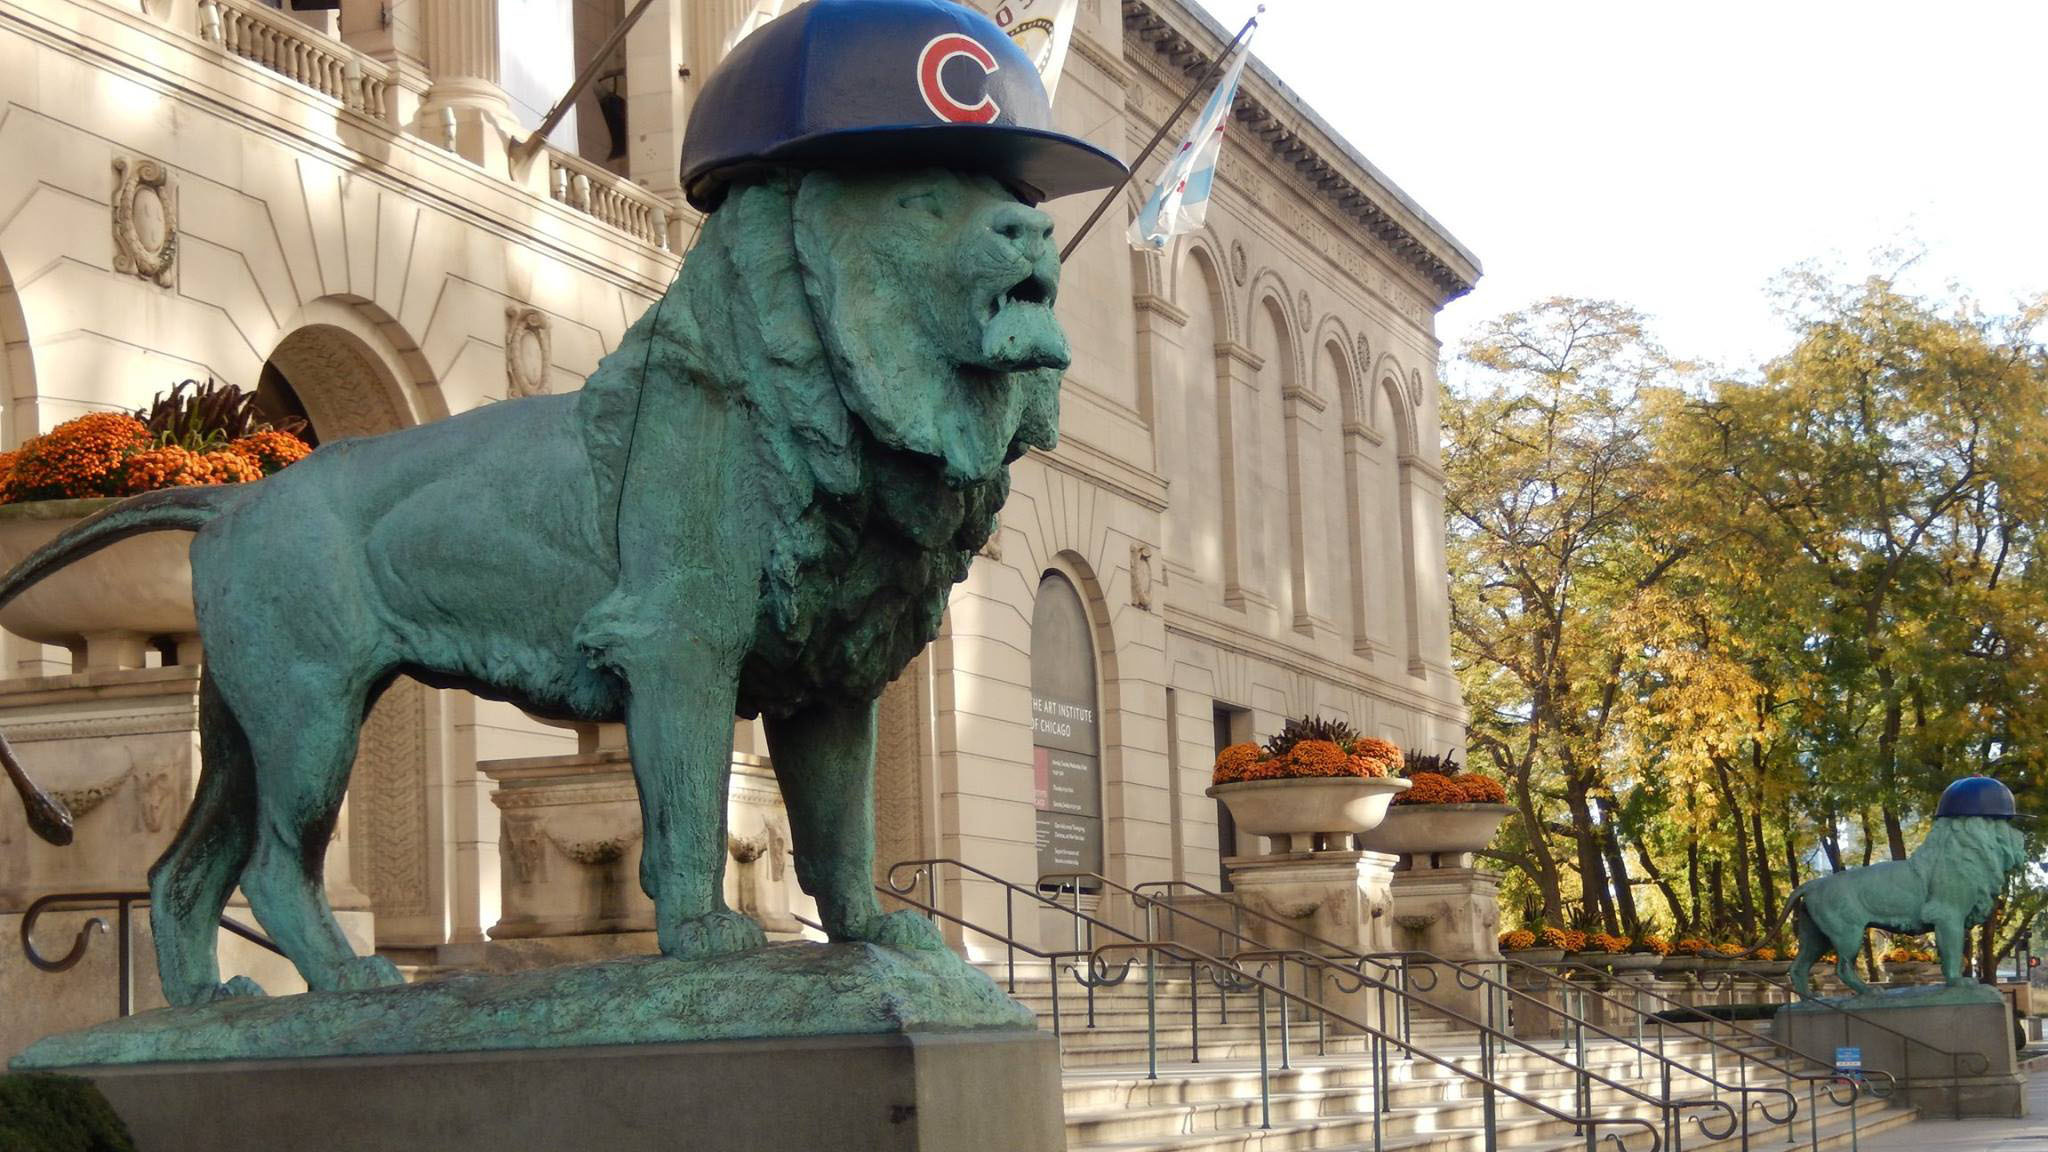 The Art Institute lions got their very first Cubs hats